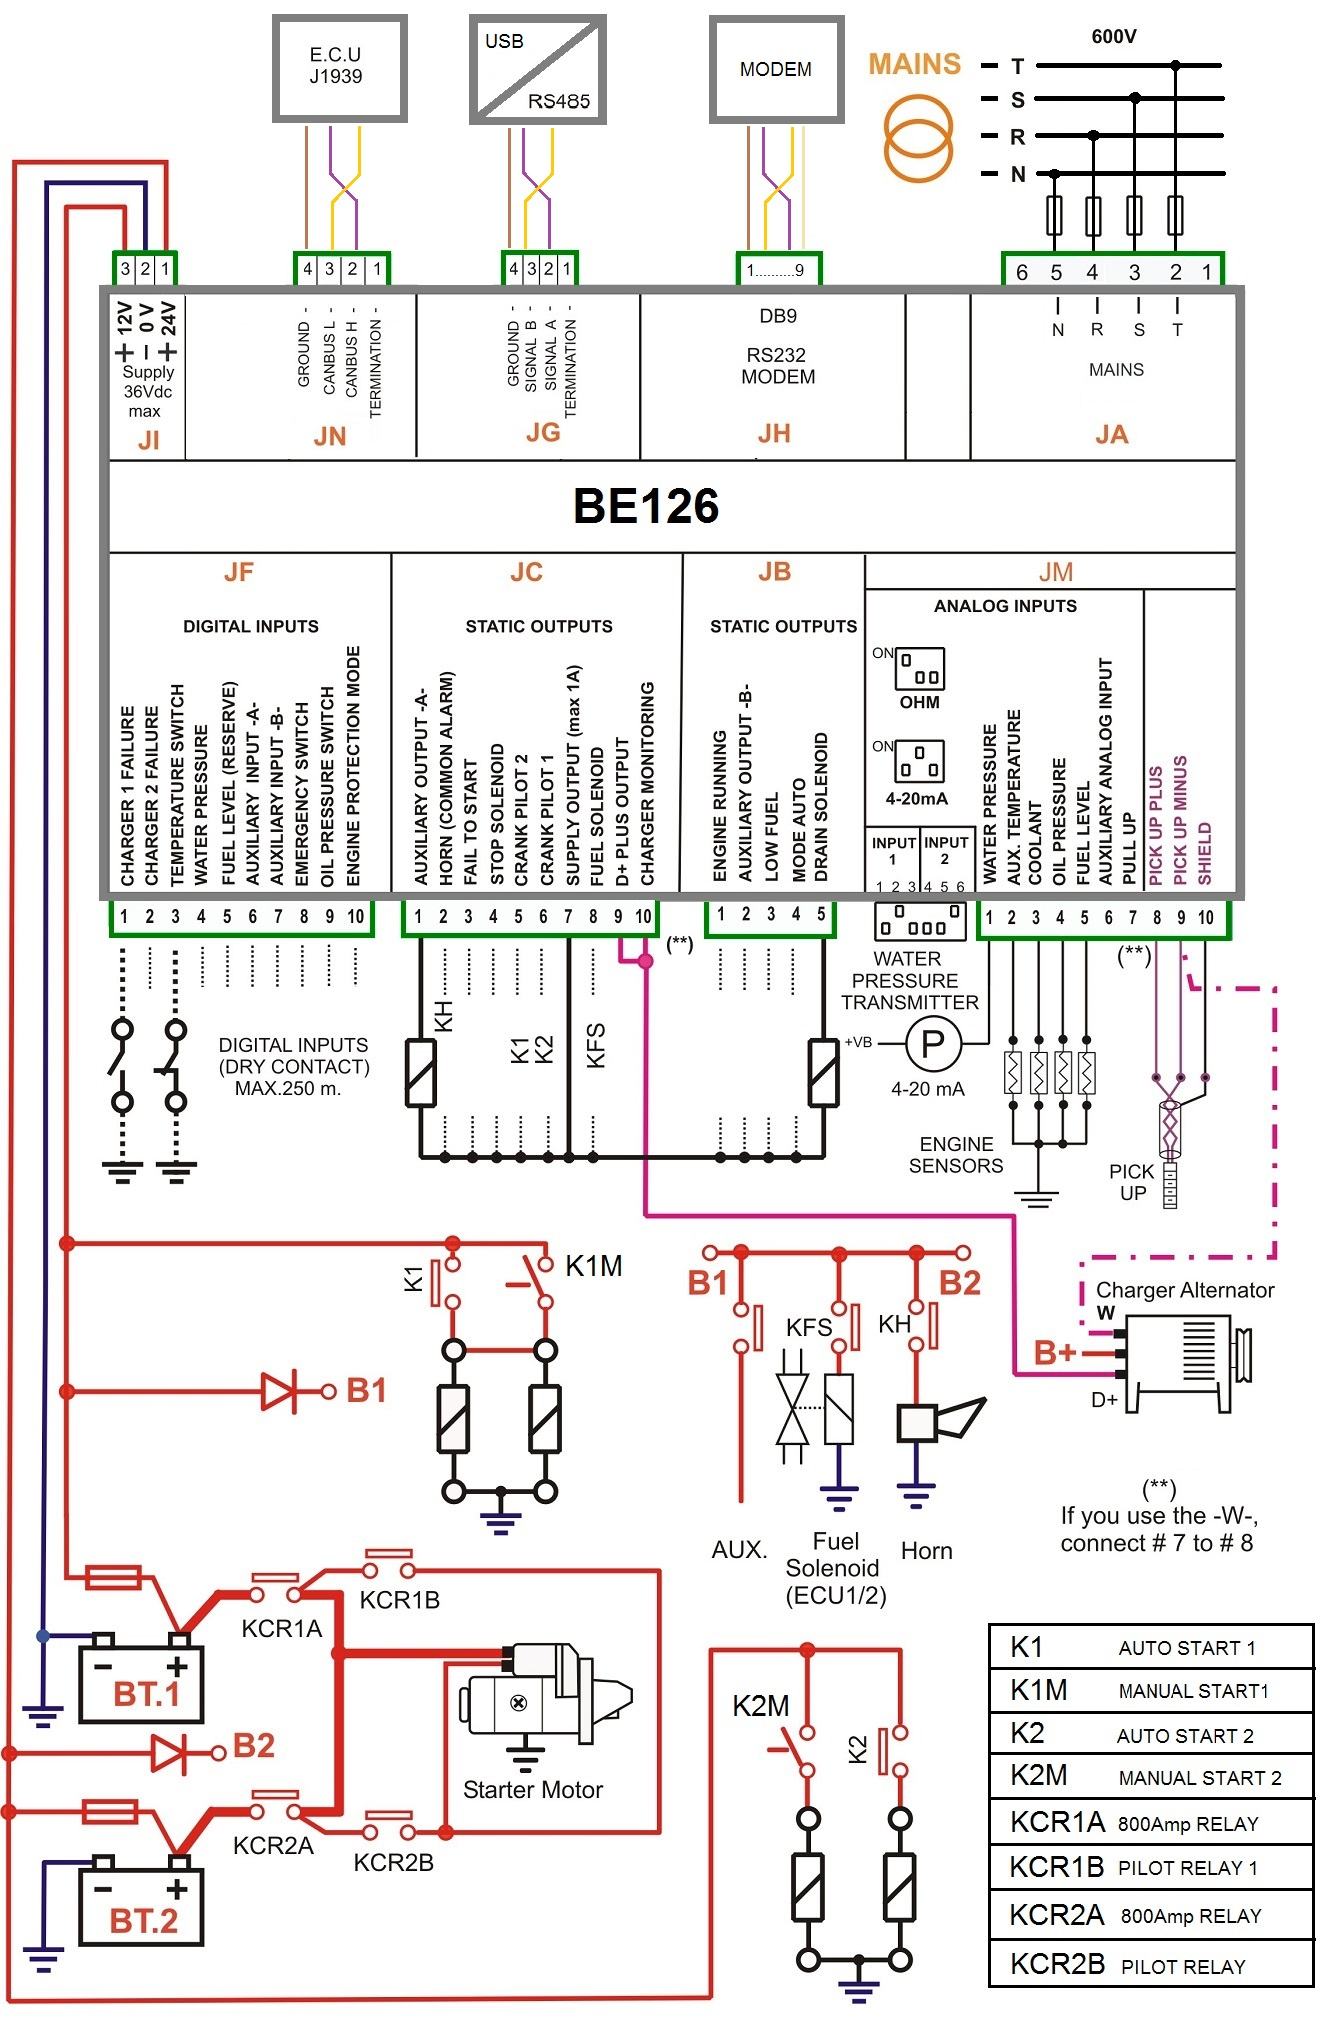 NFPA20 fire pump controller wiring diagram fire pump wiring diagram fire pump electrical requirements \u2022 free fill rite pump wiring diagram at sewacar.co